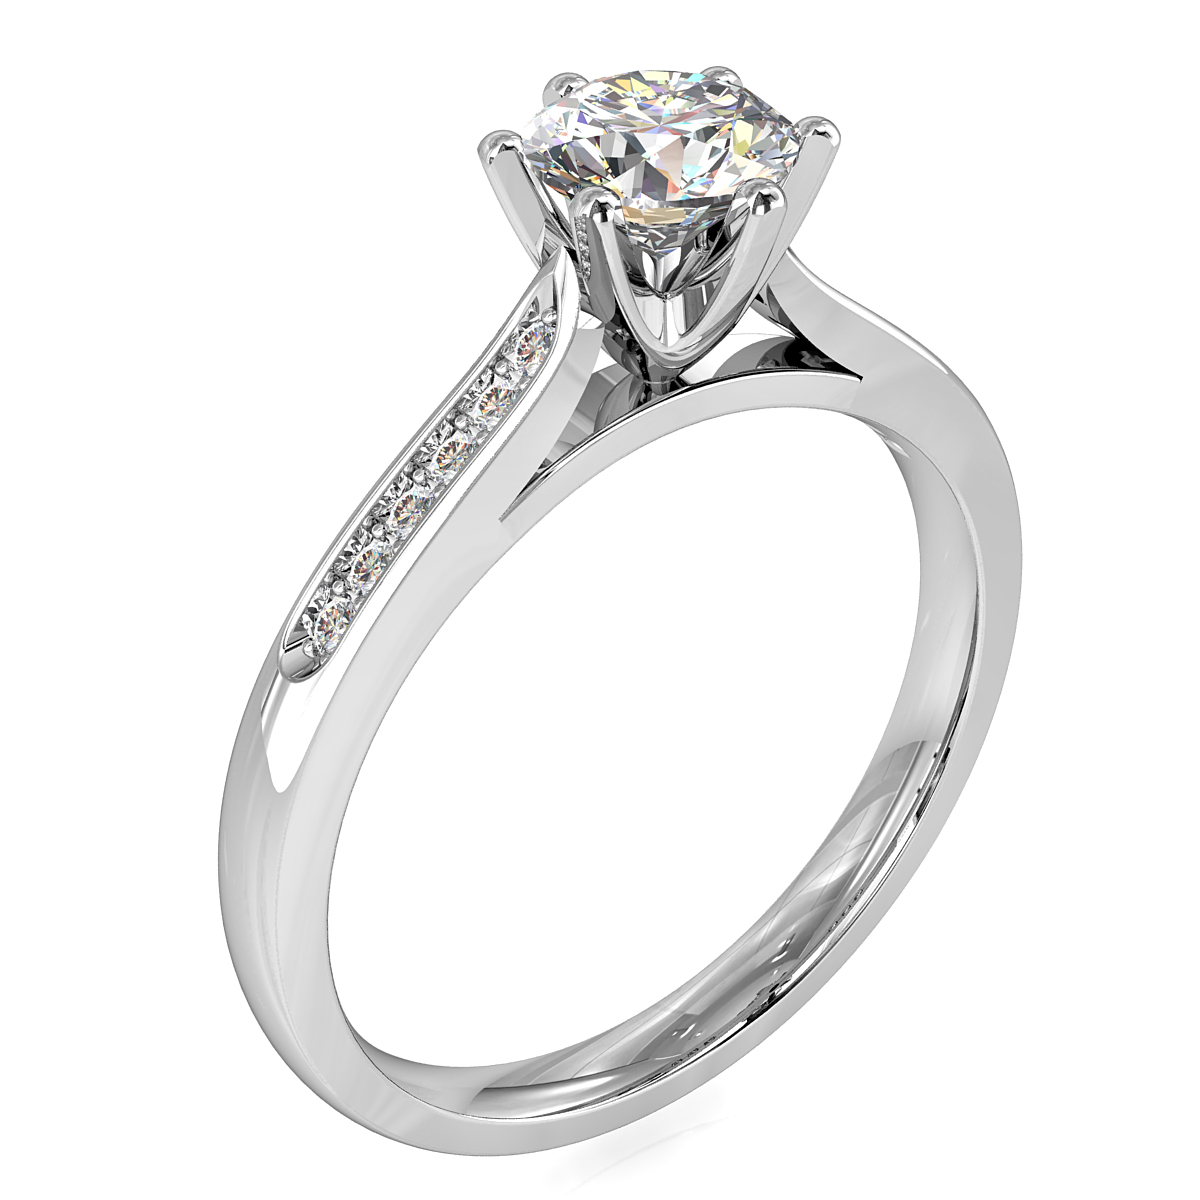 Round Brilliant Cut Solitaire Diamond Engagement Ring, 6 Button Claws Set on a Tapered Bead Set Band with Classic Undersetting.